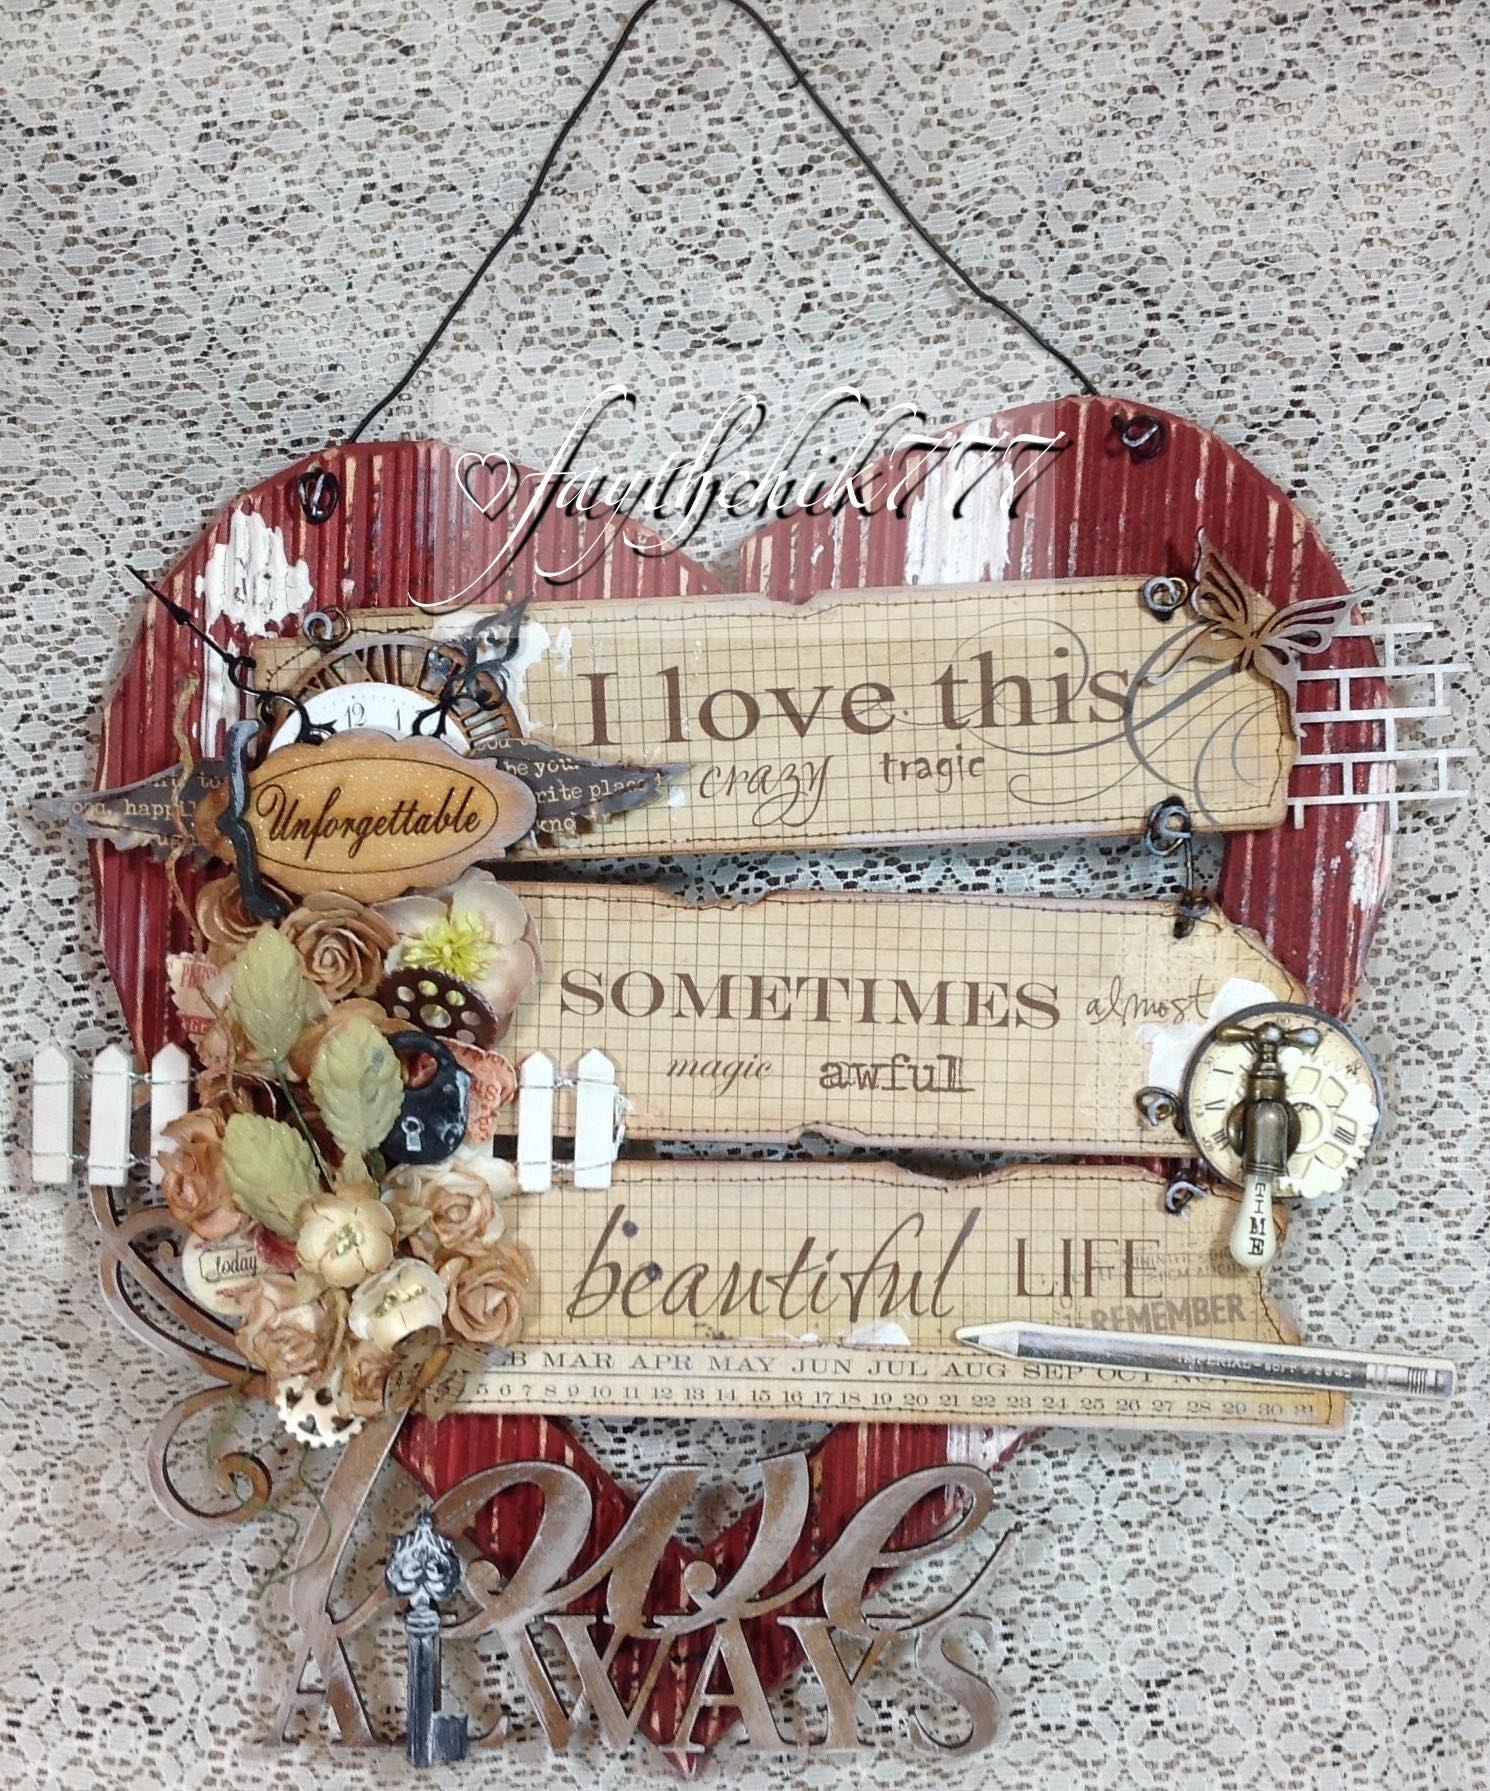 Shabby Chic Wall Art Gdt Project For Sacrafters – Youtube Pertaining To Shabby Chic Wall Art (View 15 of 20)